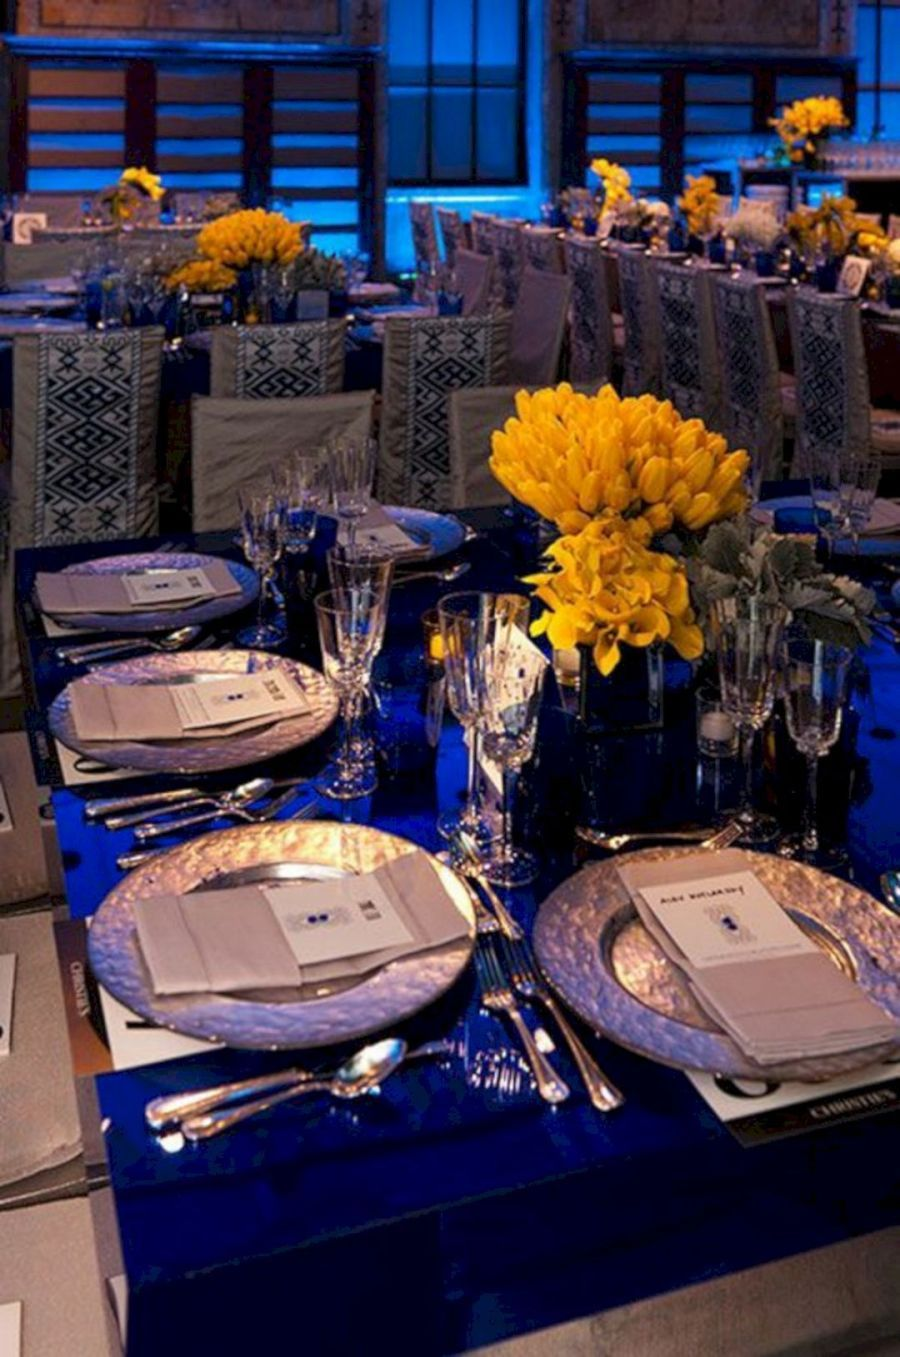 blue wedding decorations for the tables